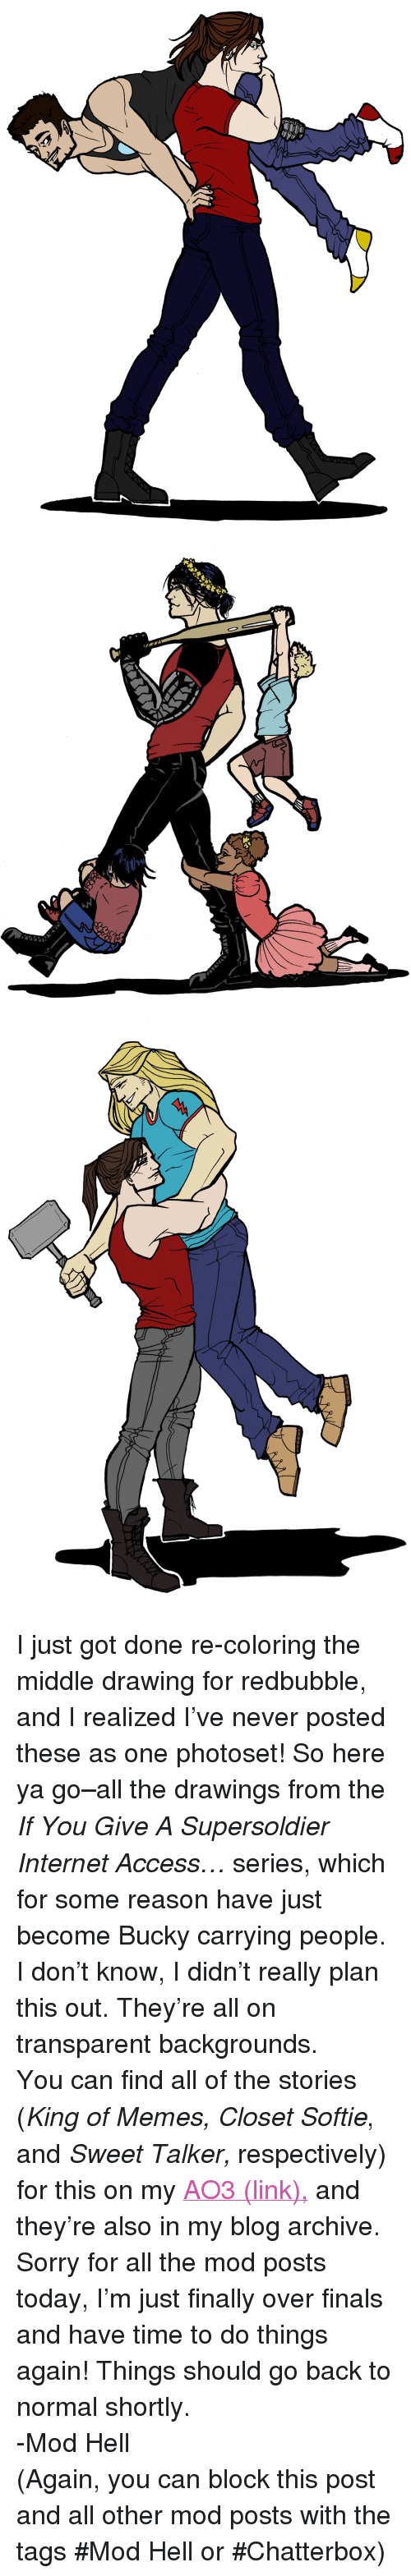 """chatterbox: <p>I just got done re-coloring the middle drawing for redbubble, and I realized I've never posted these as one photoset! So here ya go&ndash;all the drawings from the <i>If You Give A Supersoldier Internet Access&hellip;</i> series, which for some reason have just become Bucky carrying people. I don't know, I didn't really plan this out. They're all on transparent backgrounds.</p><p>You can find all of the stories (<i>King of Memes, Closet Softie</i>, and <i>Sweet Talker, </i>respectively) for this on my <a href=""""http://Archiveofourown.org/users/BuckyKingOfMemes"""">AO3 (link),</a> and they're also in my blog archive.</p><p>Sorry for all the mod posts today, I'm just finally over finals and have time to do things again! Things should go back to normal shortly.</p><p>-Mod Hell</p><p>(Again, you can block this post and all other mod posts with the tags #Mod Hell or #Chatterbox)</p>"""